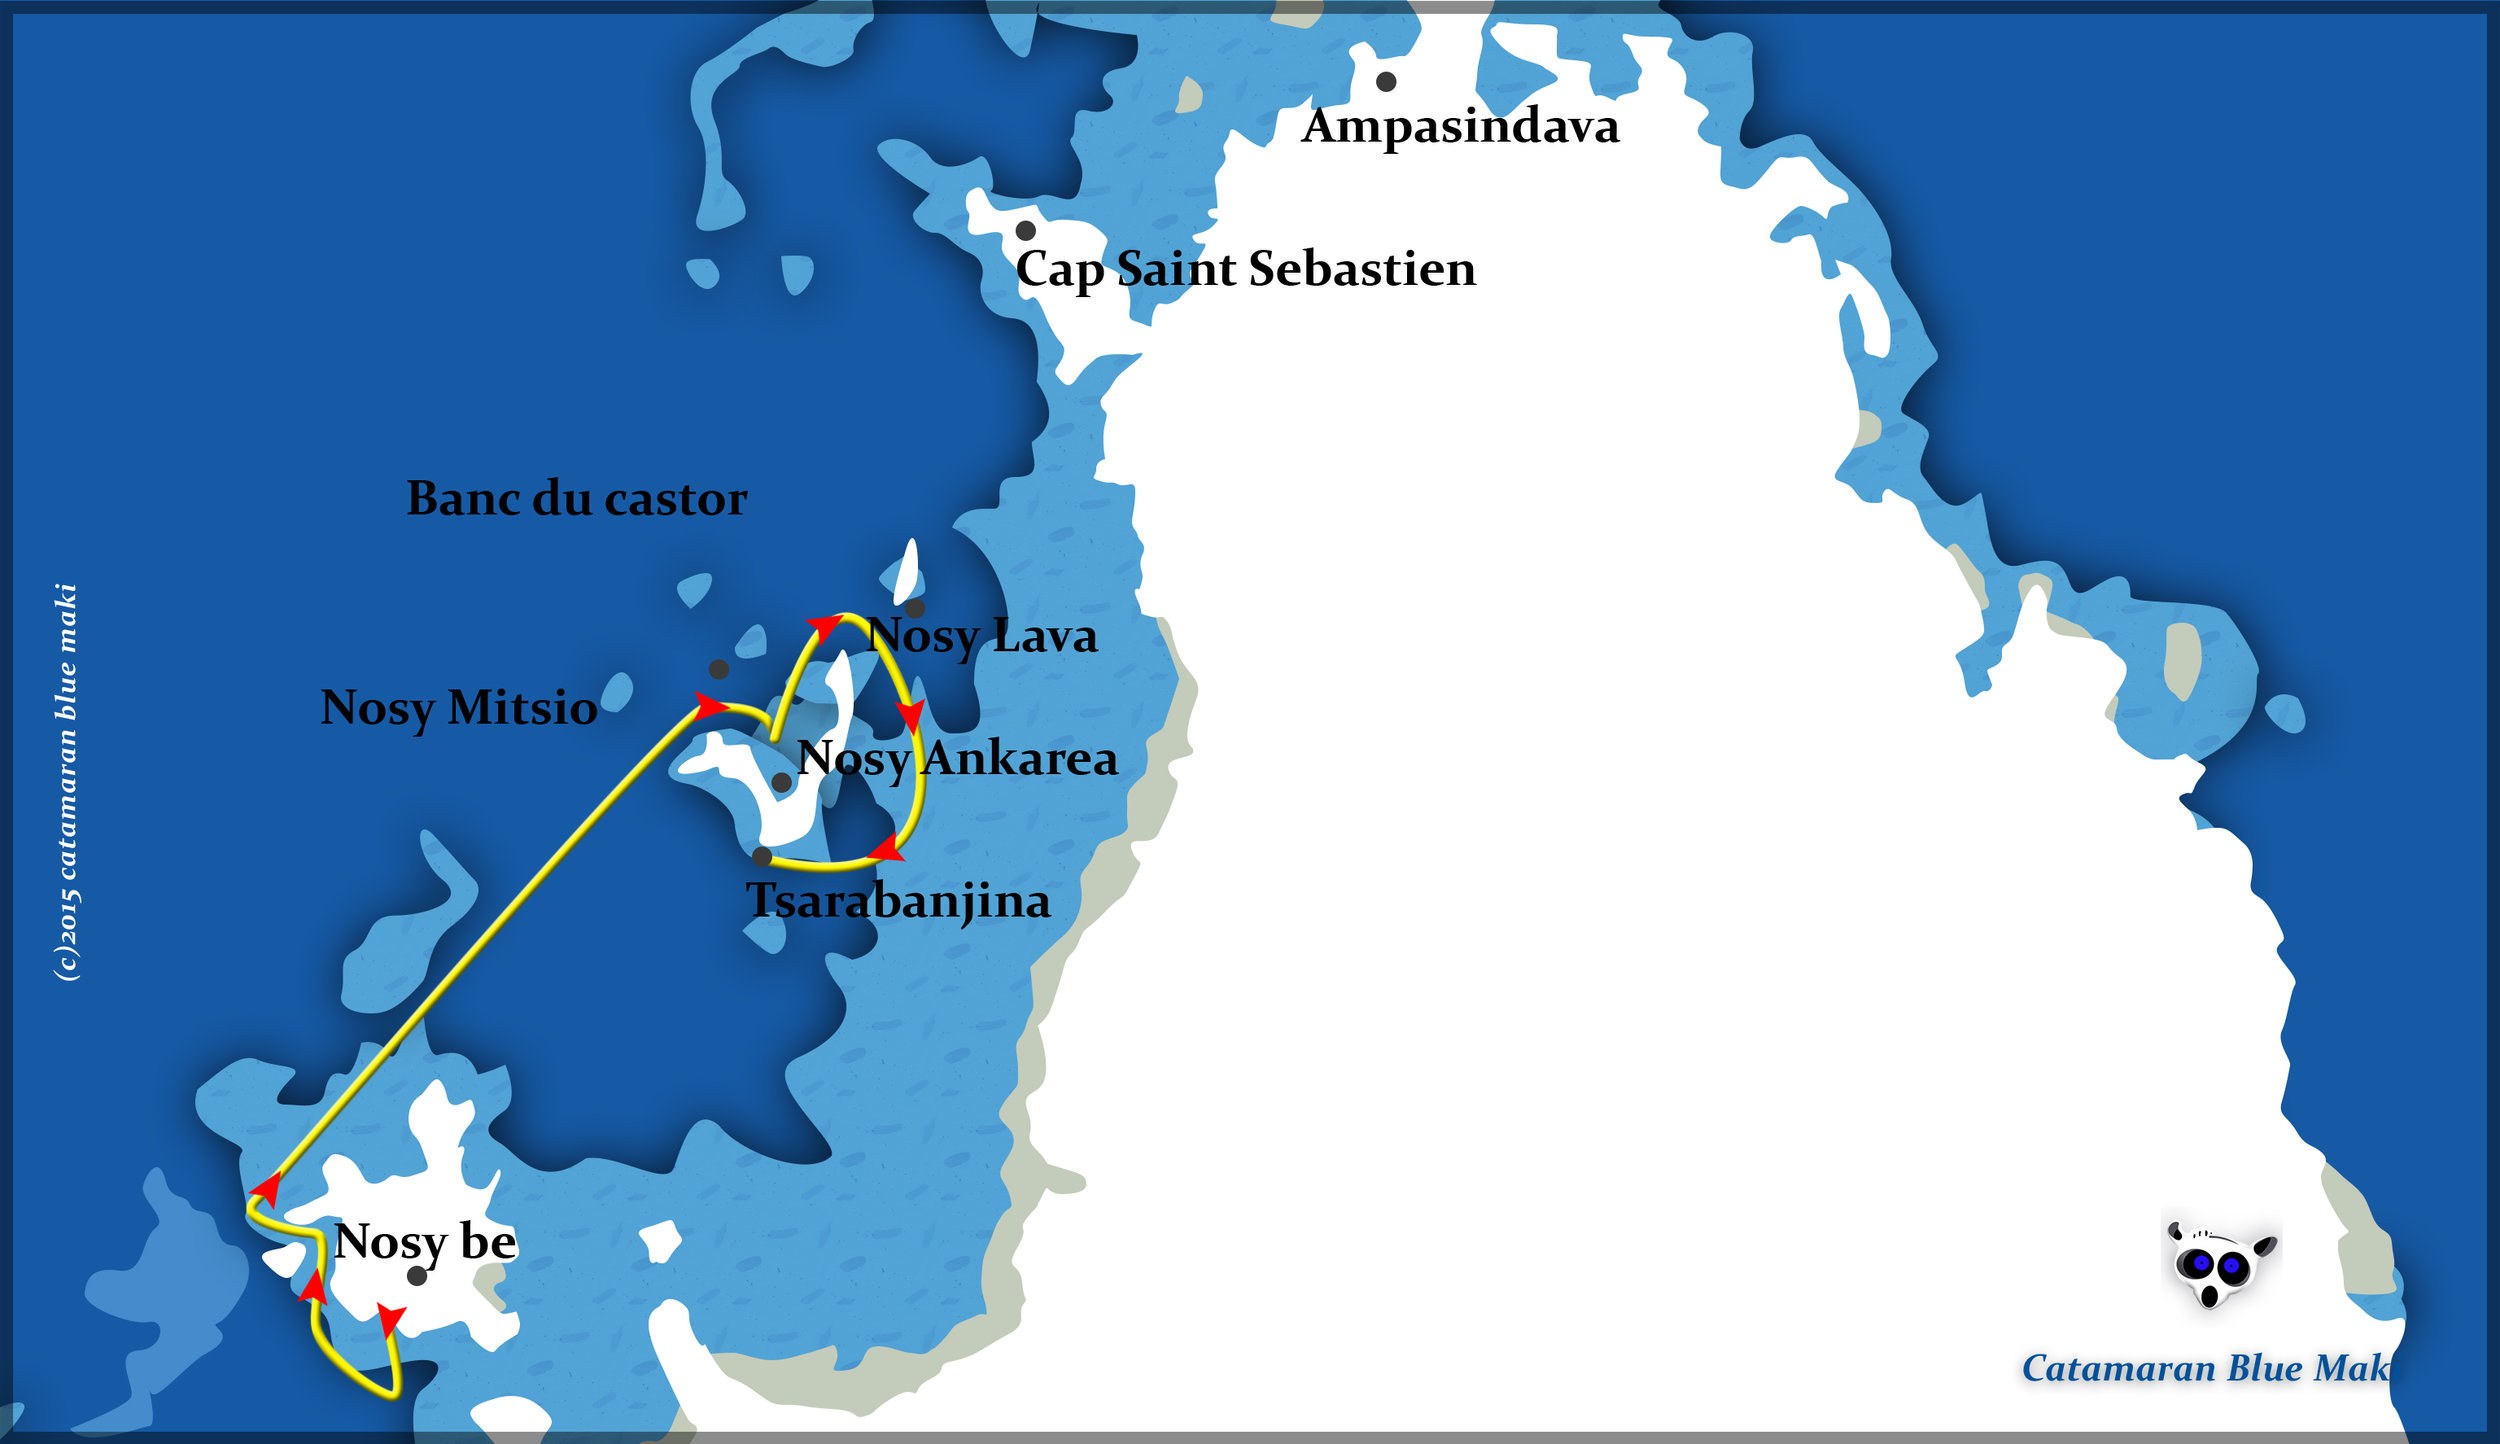 Charter boat routes of the Maki Cat